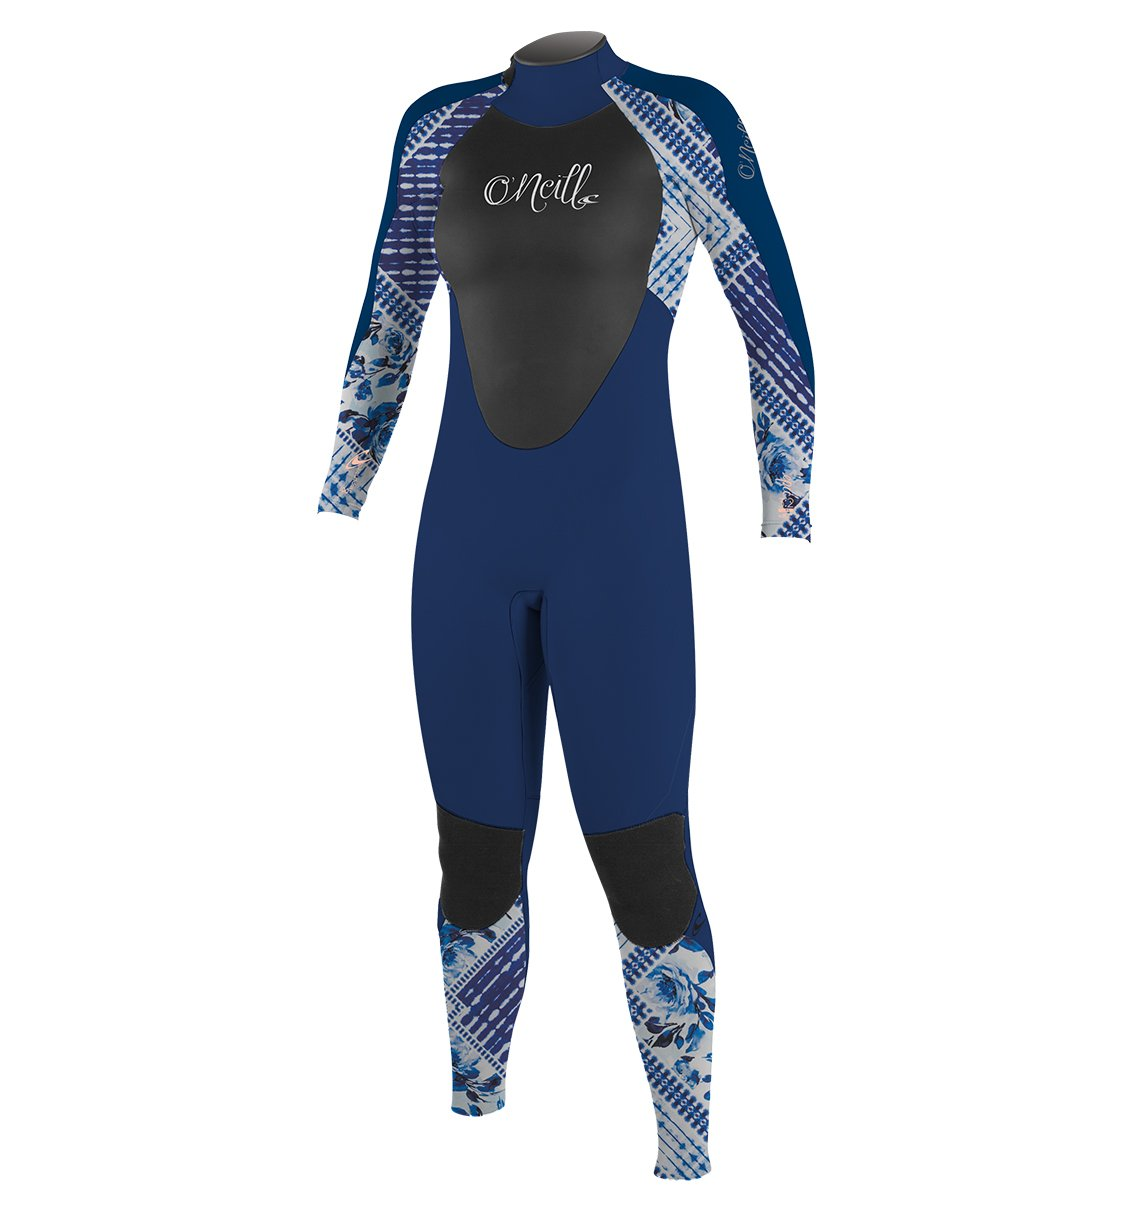 O'Neill Youth Epic 4/3mm Back Zip Full Wetsuit, Navy/IndPatch/Deepsea, 4 by O'Neill Wetsuits